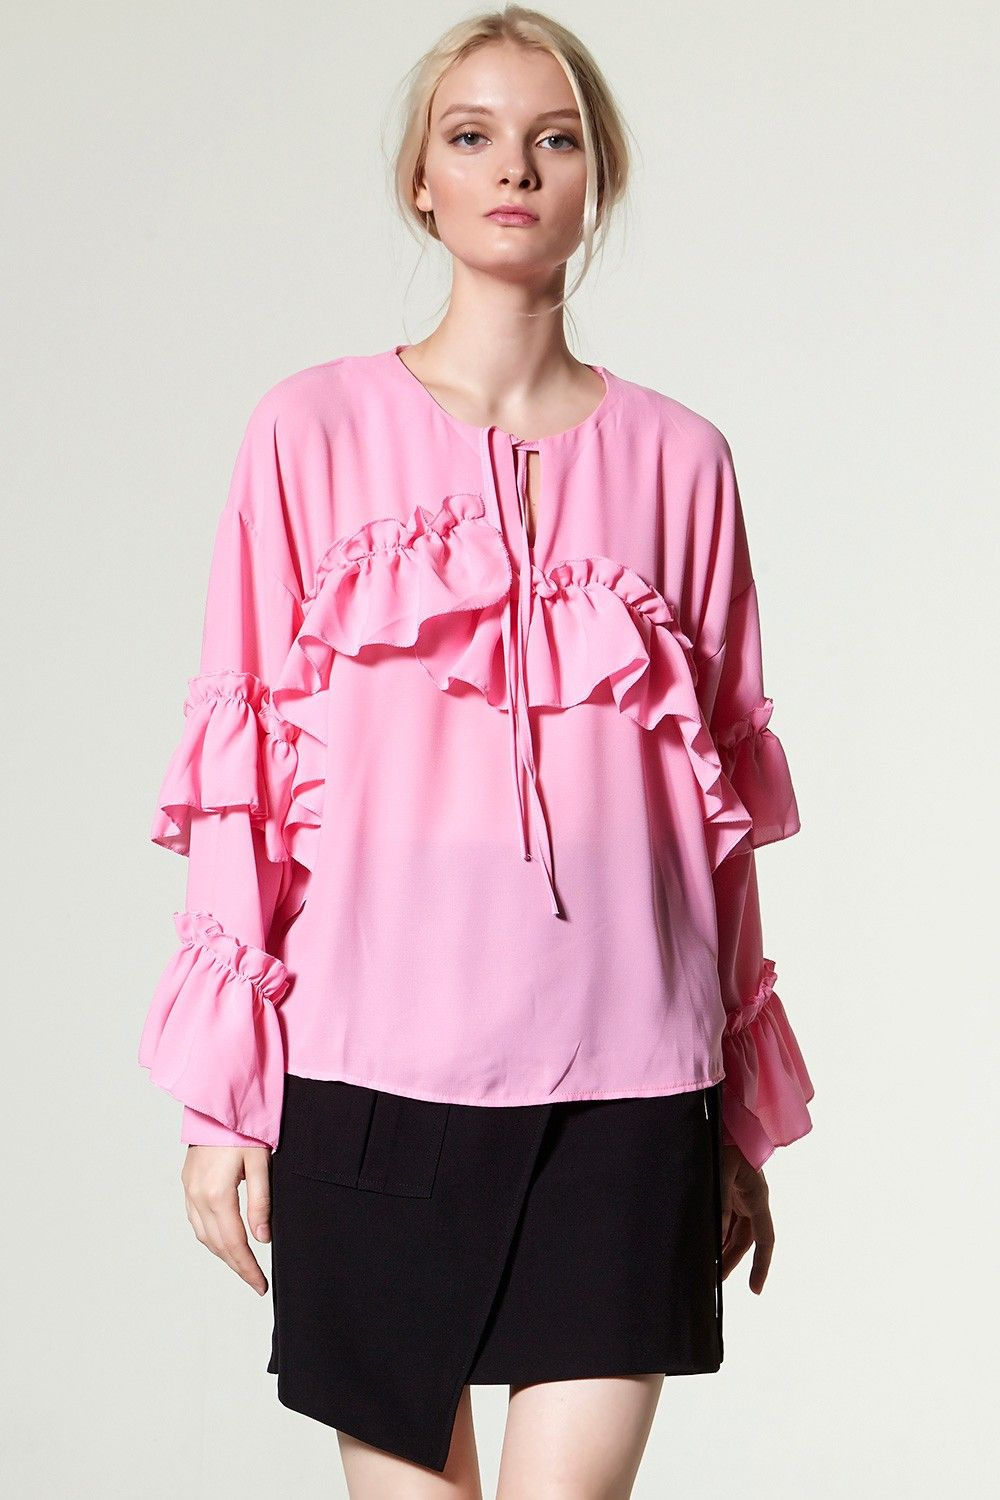 90b19466 Dana Ruffl Blouse Discover the latest fashion trends online at storets.com